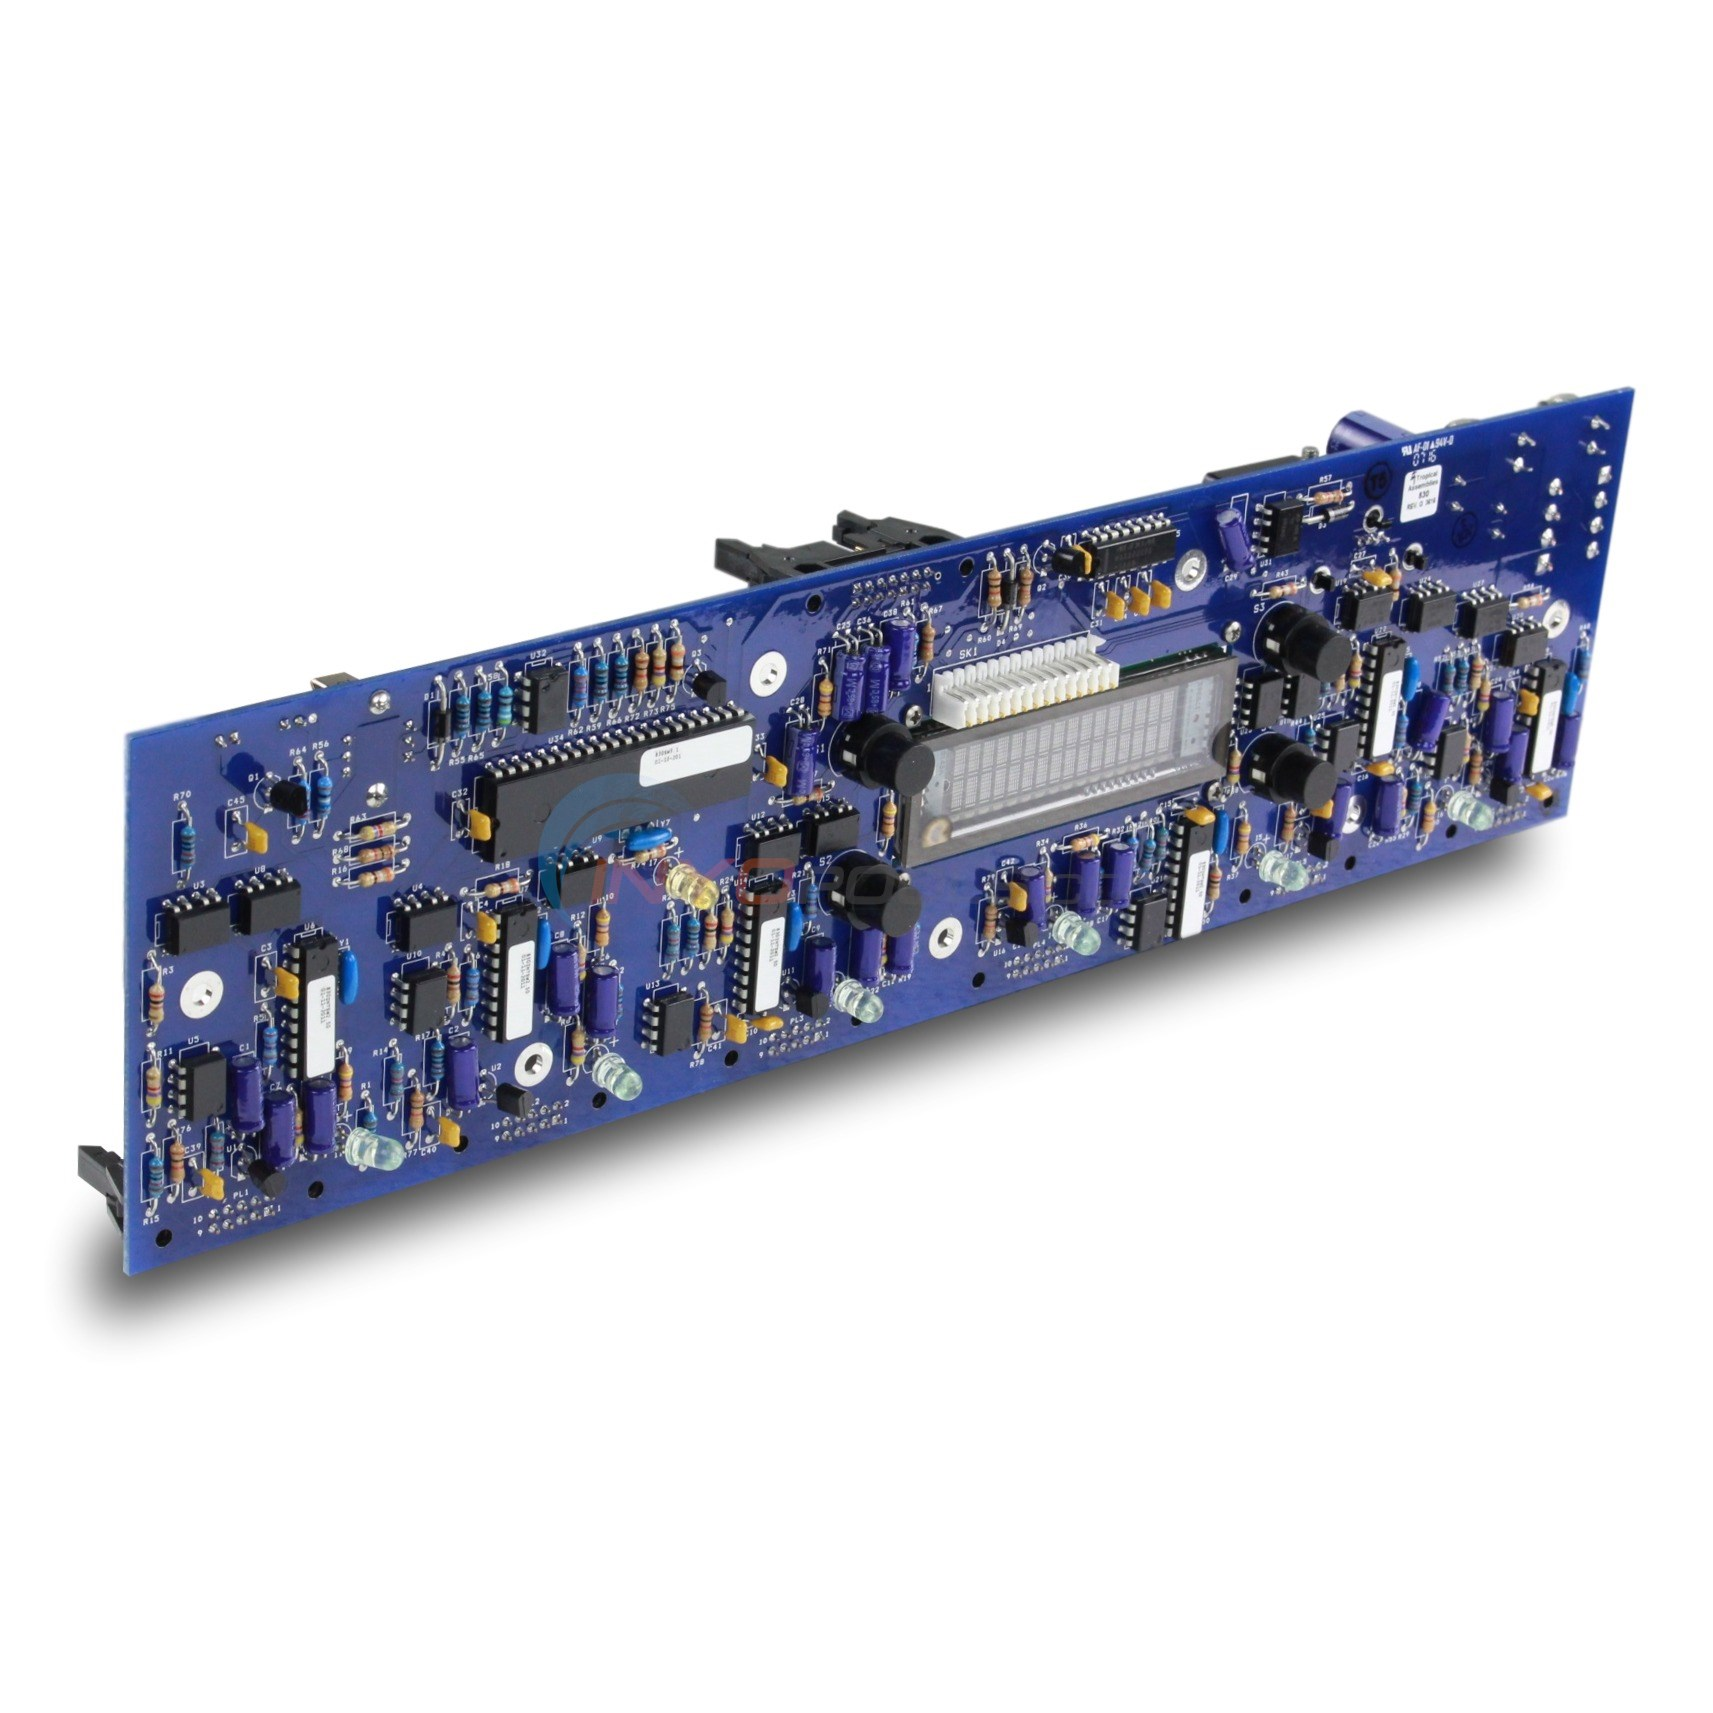 PPP Electronic Control Board (New)